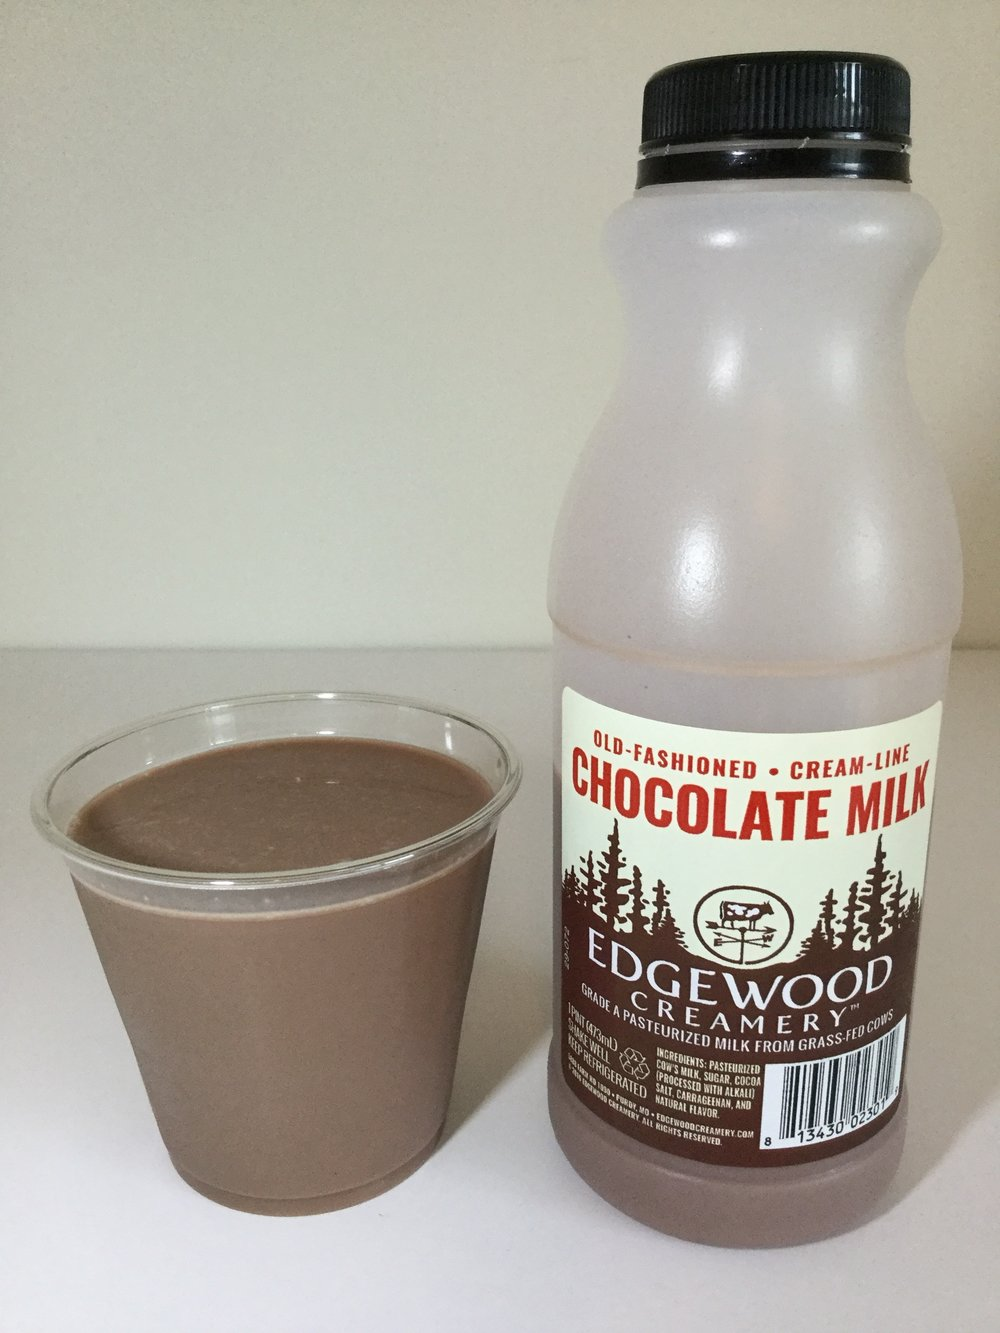 Edgewood Creamery Chocolate Milk Cup